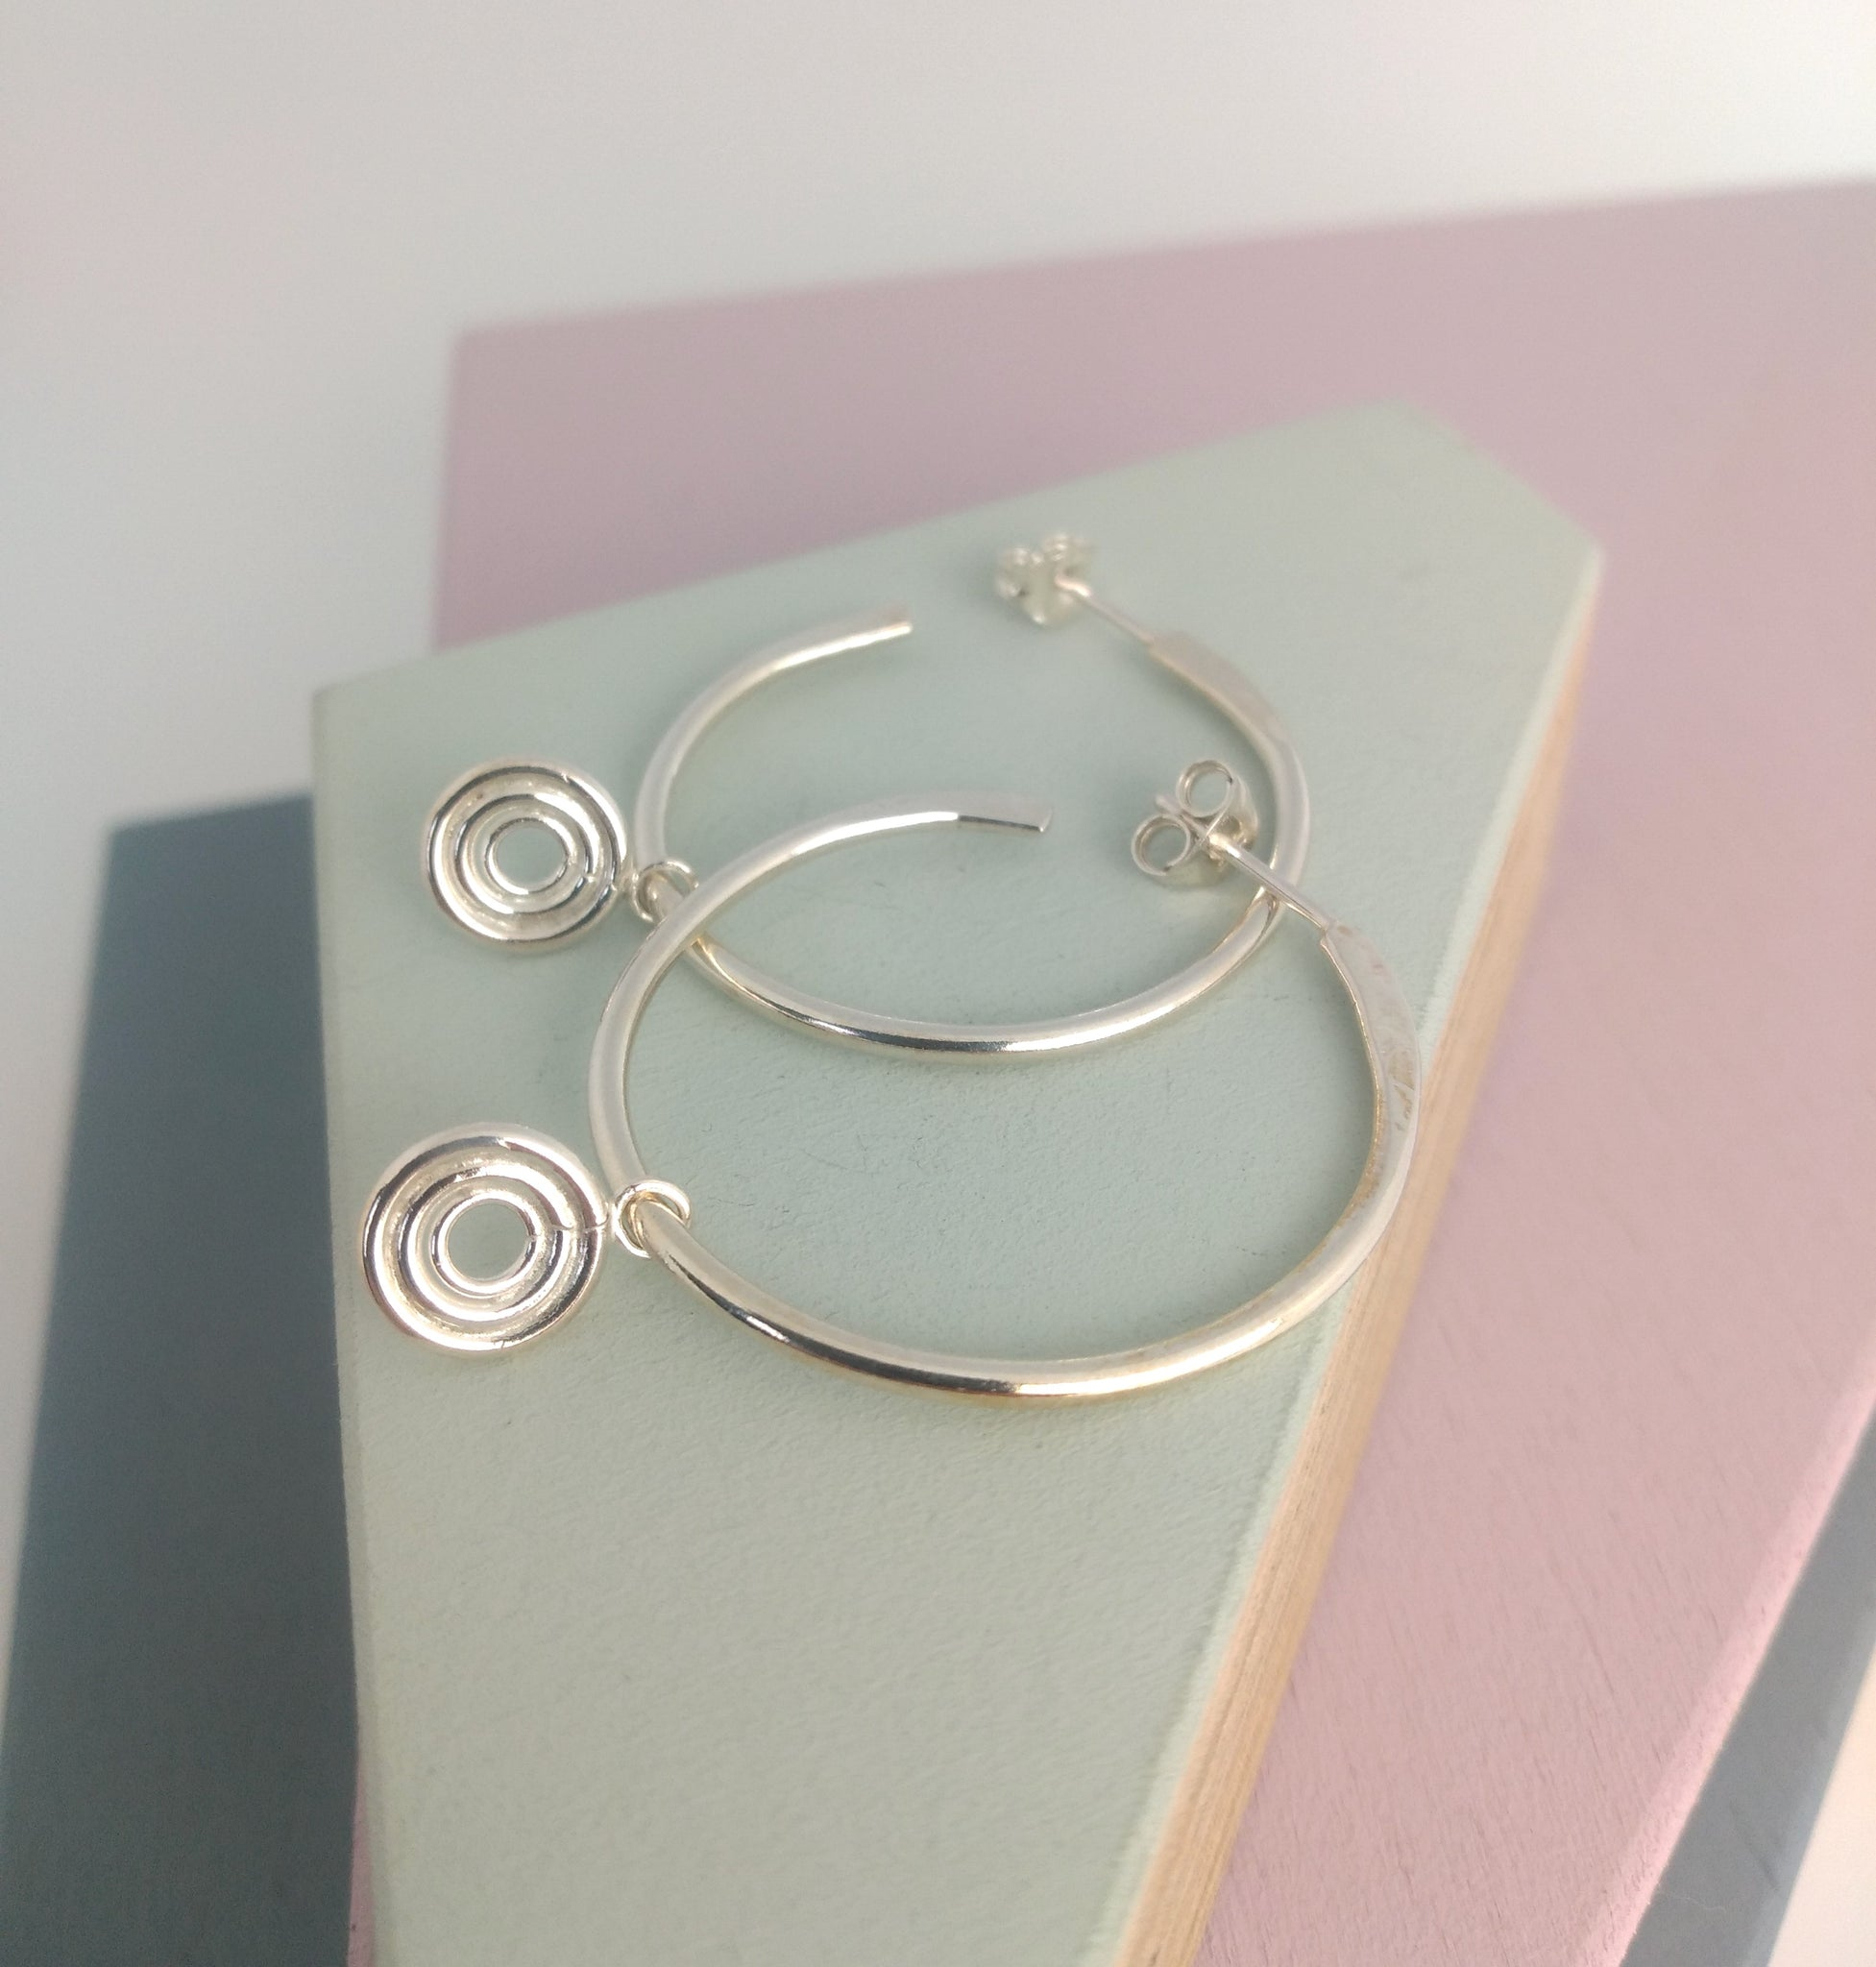 hoop earrings in sterling silver with circle charm